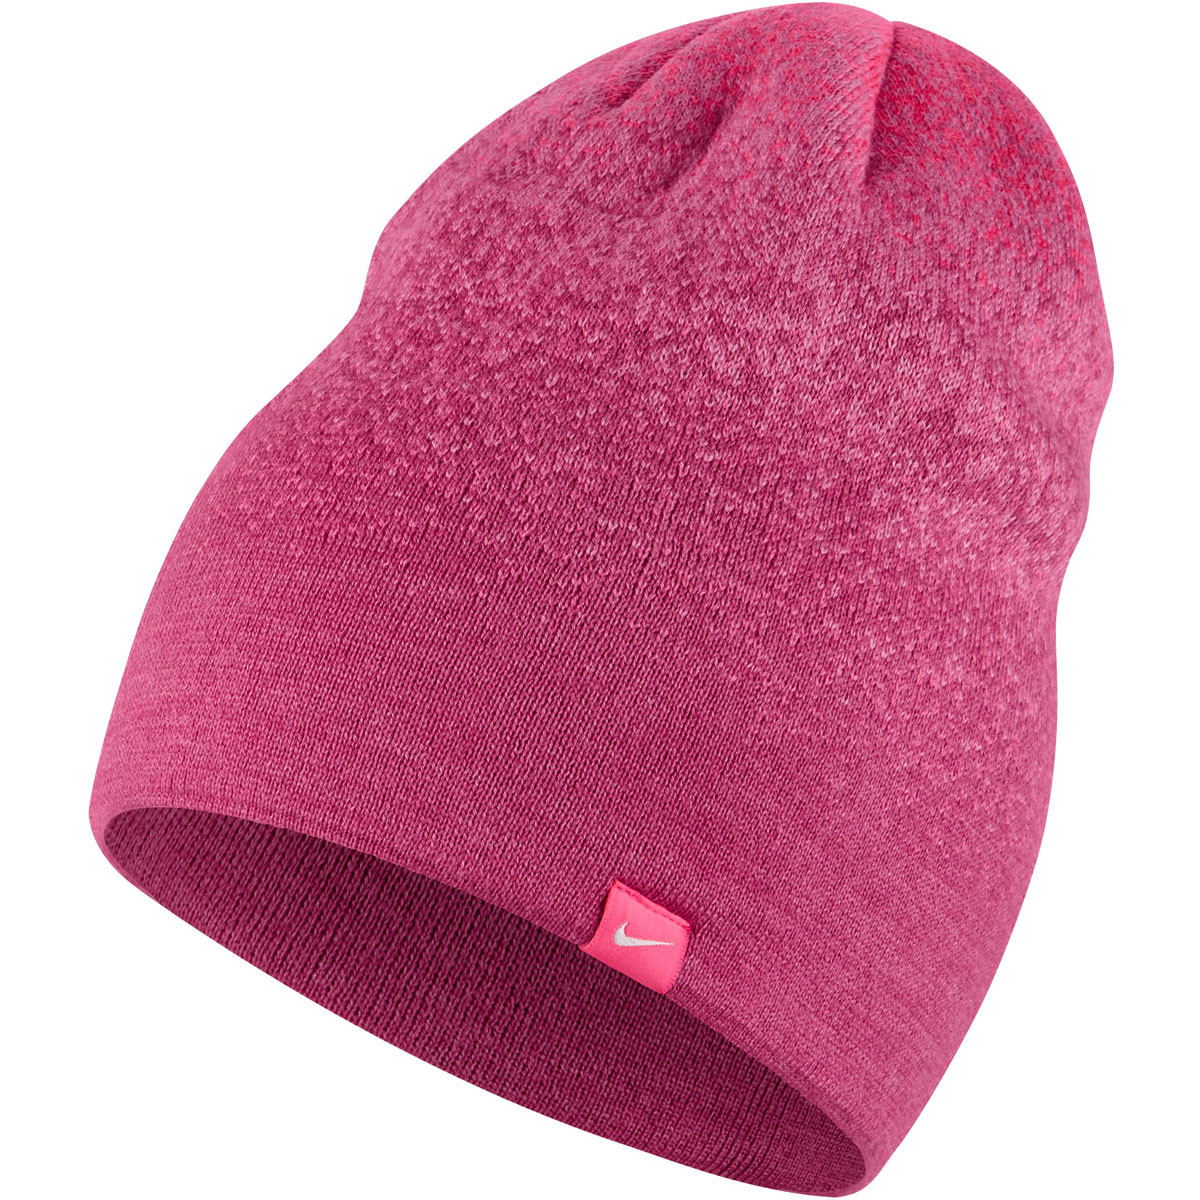 a04e9075e Nike Golf Womens Fade Knit Beanie Winter Hat 685186 - Stocking Fillers